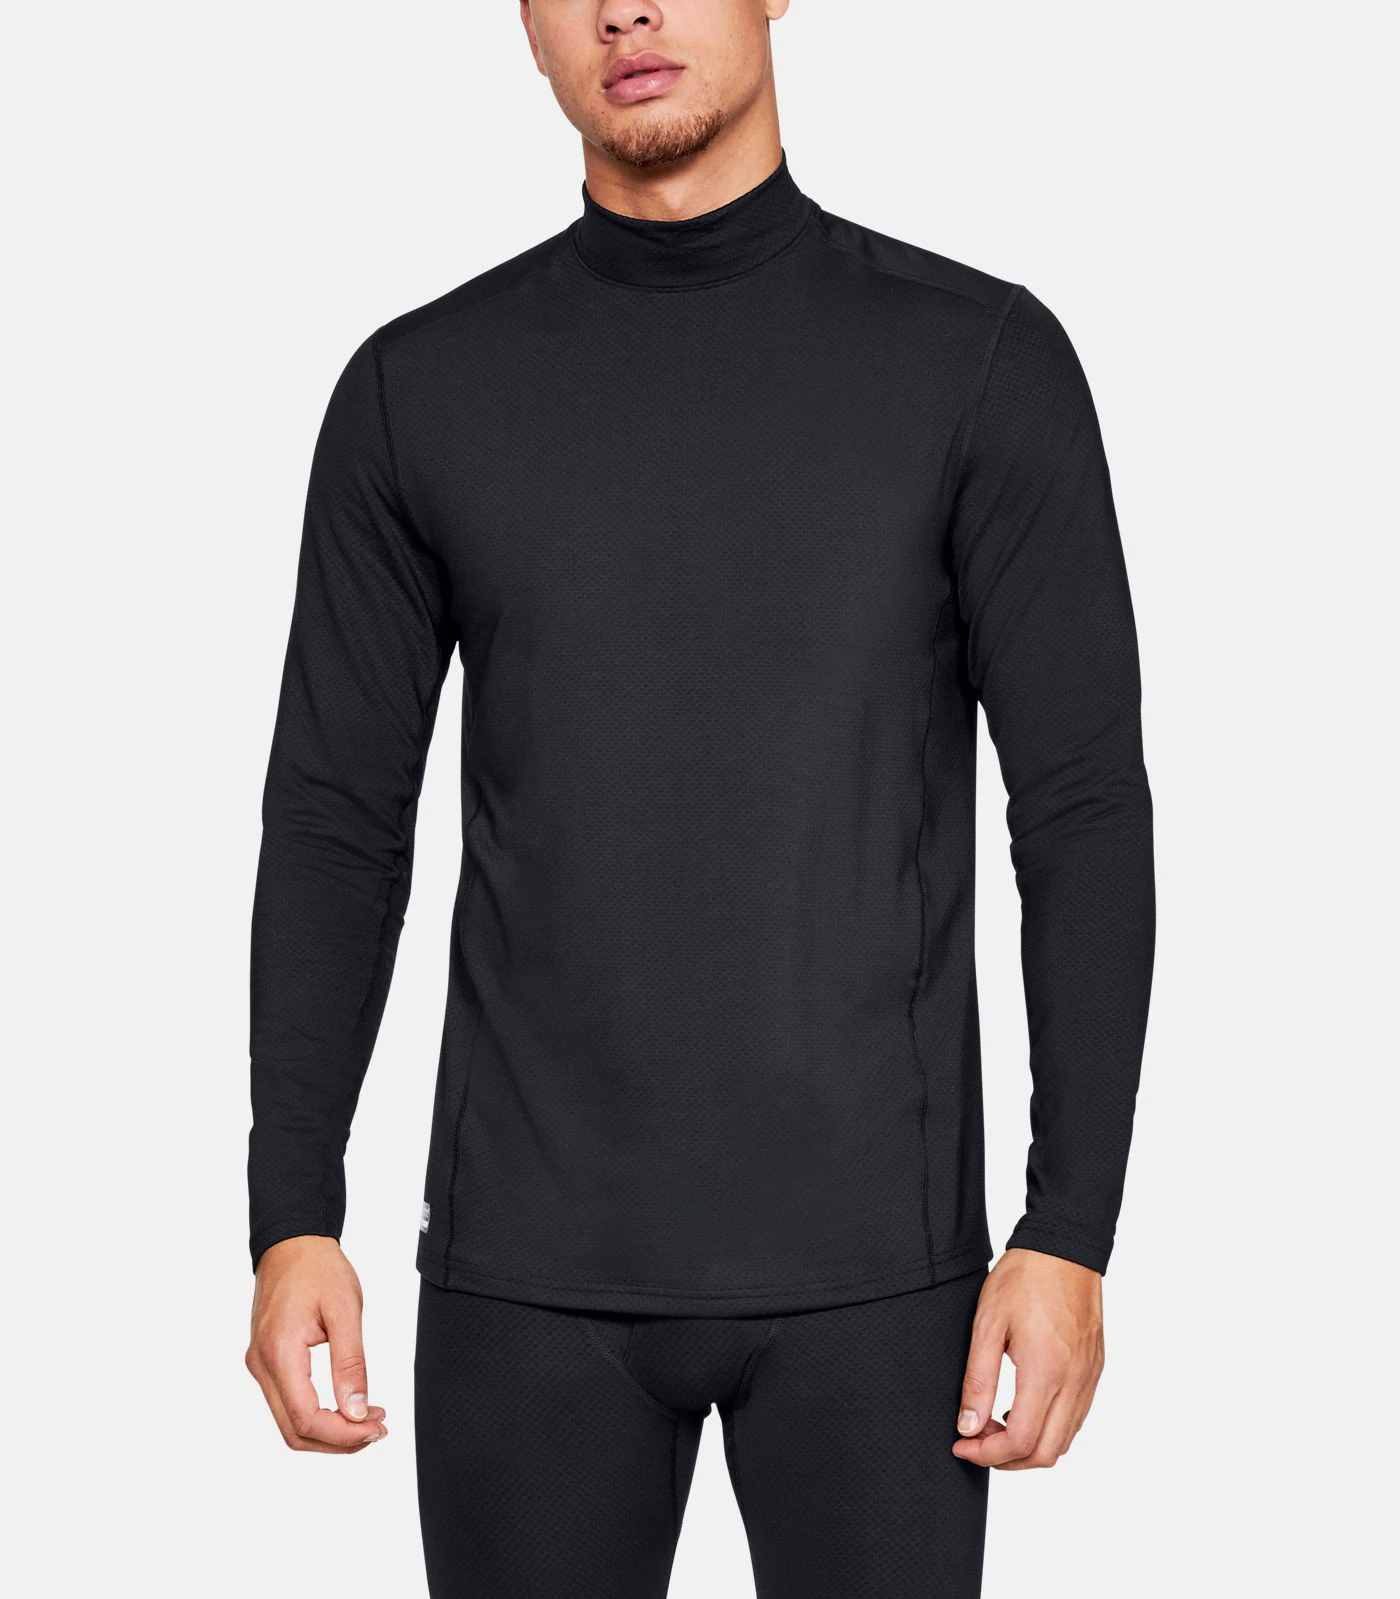 MENS_BASE-LAYERS_ReactorMock_UAR1316935001_01